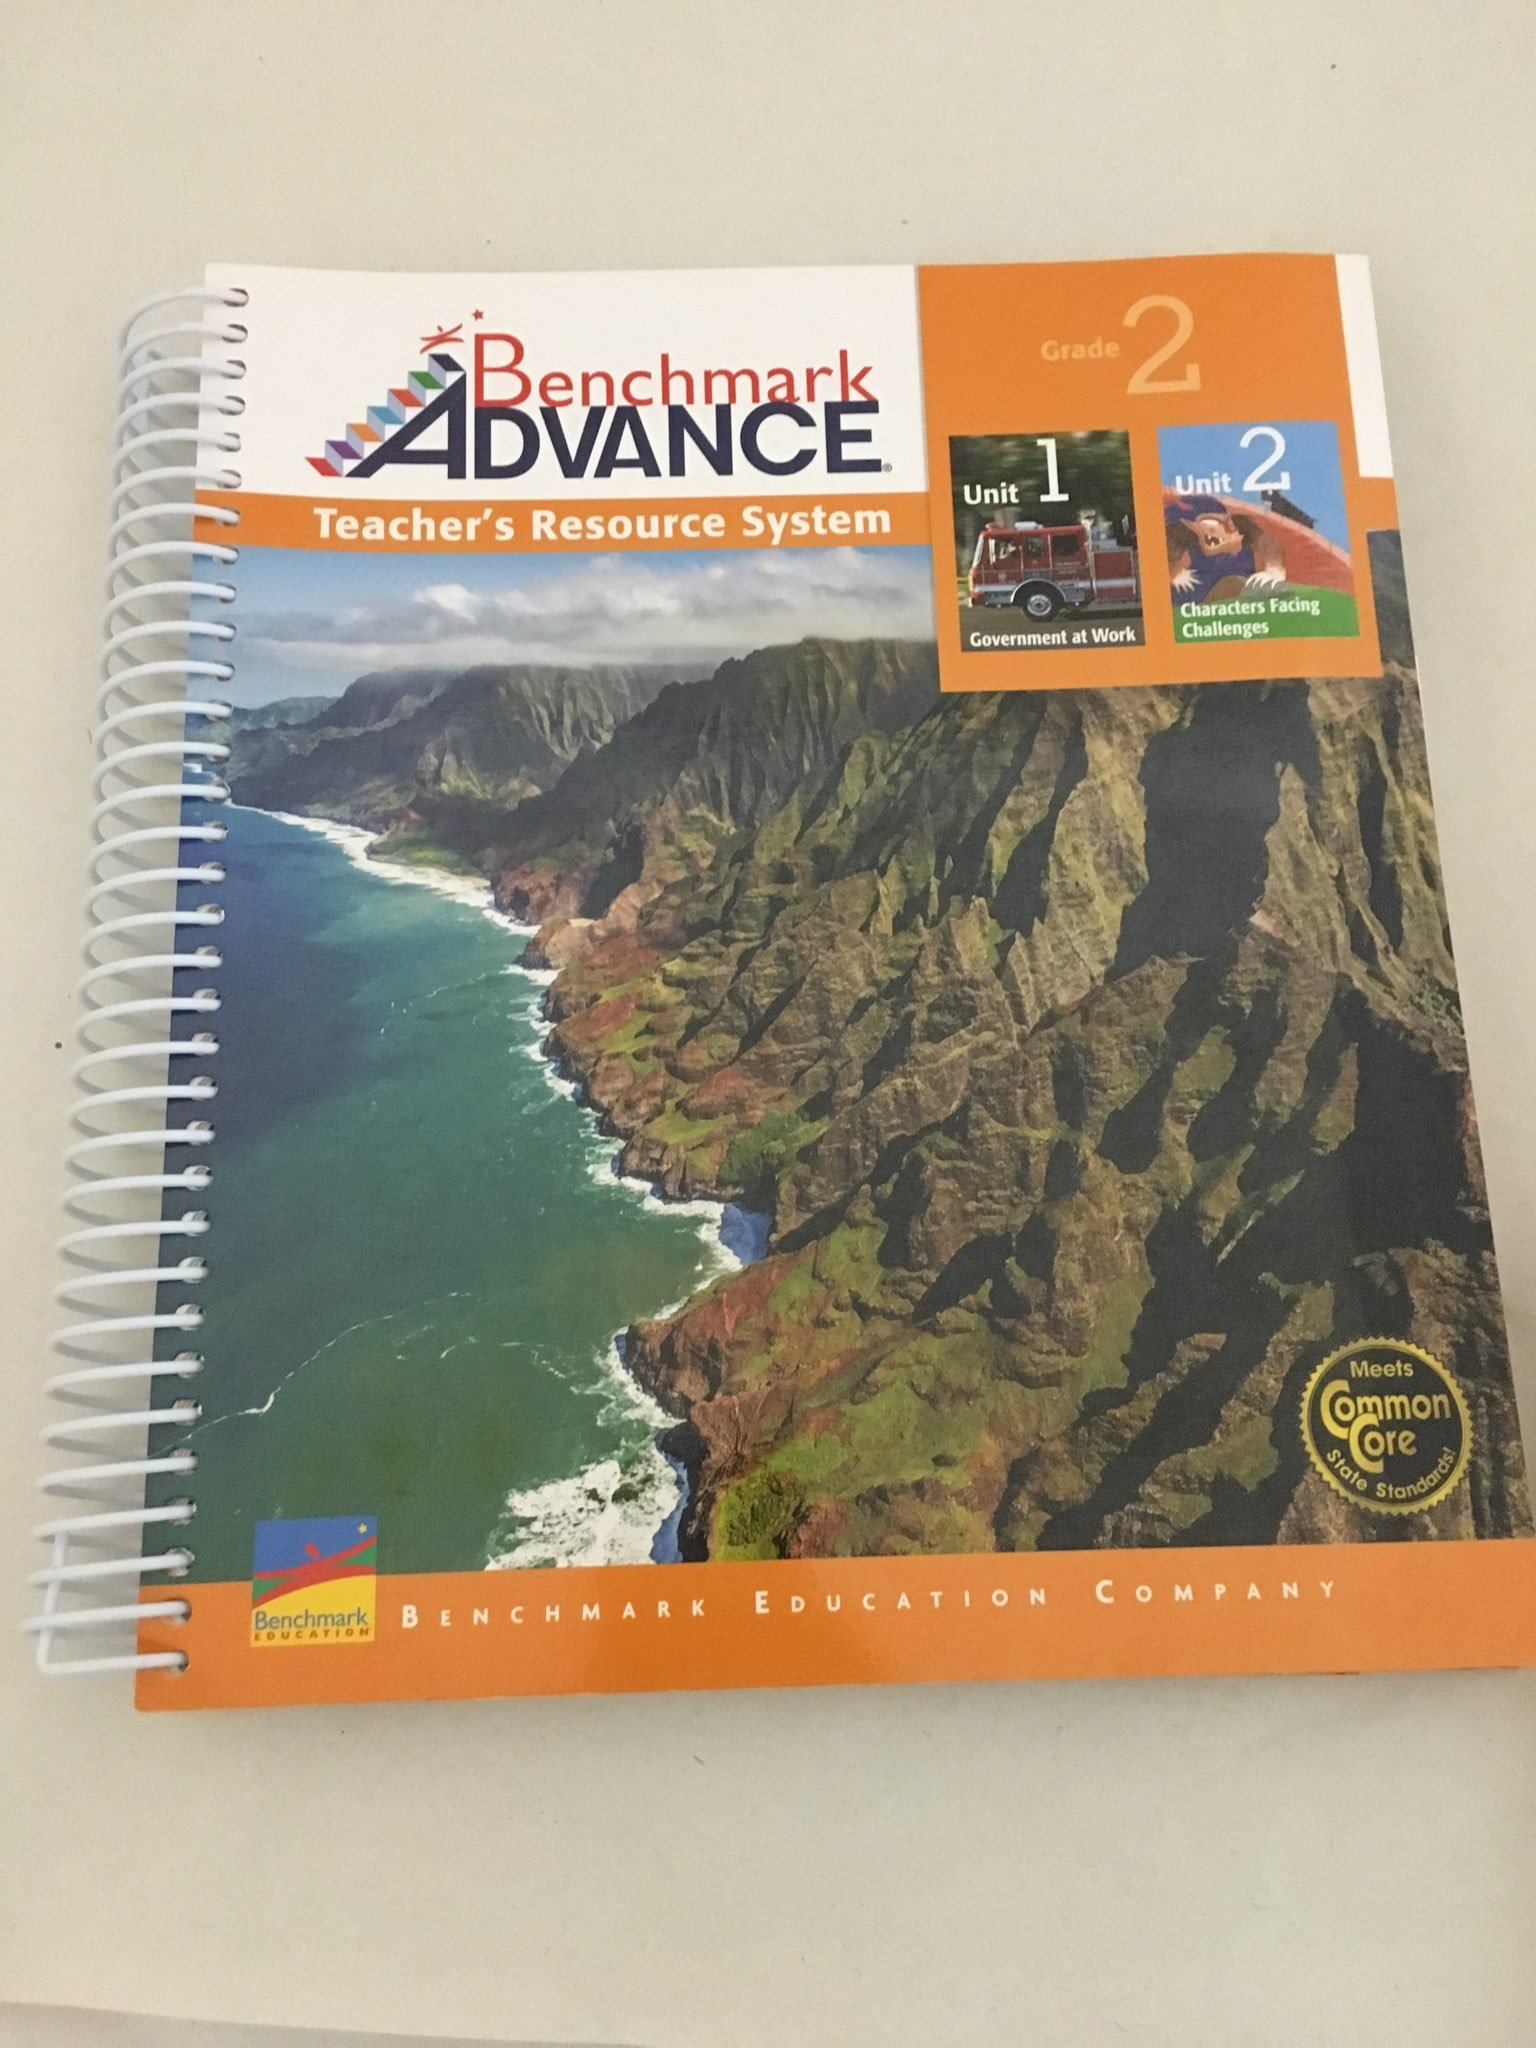 Download Benchmark Advance Teacher's Resource System Unit 1 Government at Work, Unit 2 Characters Facing Challenges (Grade 2) ISBN-10: 1512522945 ISBN-13: 9781512522945 pdf epub